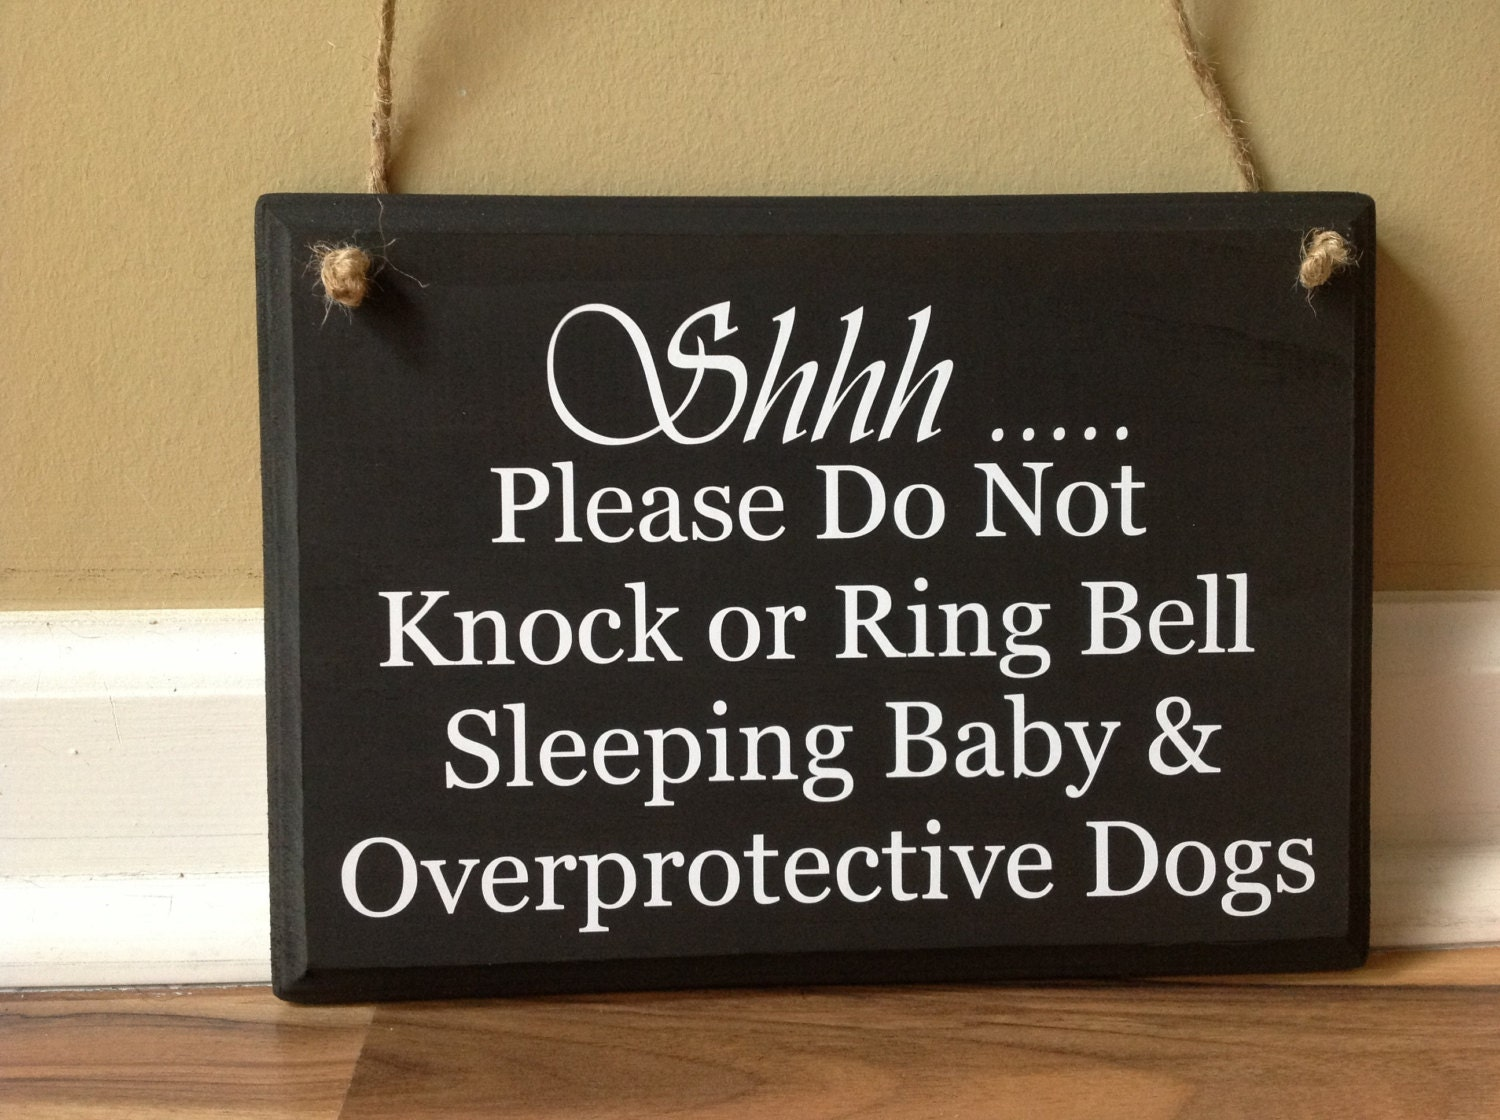 Shhh Please Do Not Knock Or Ring Bell Sleeping Baby